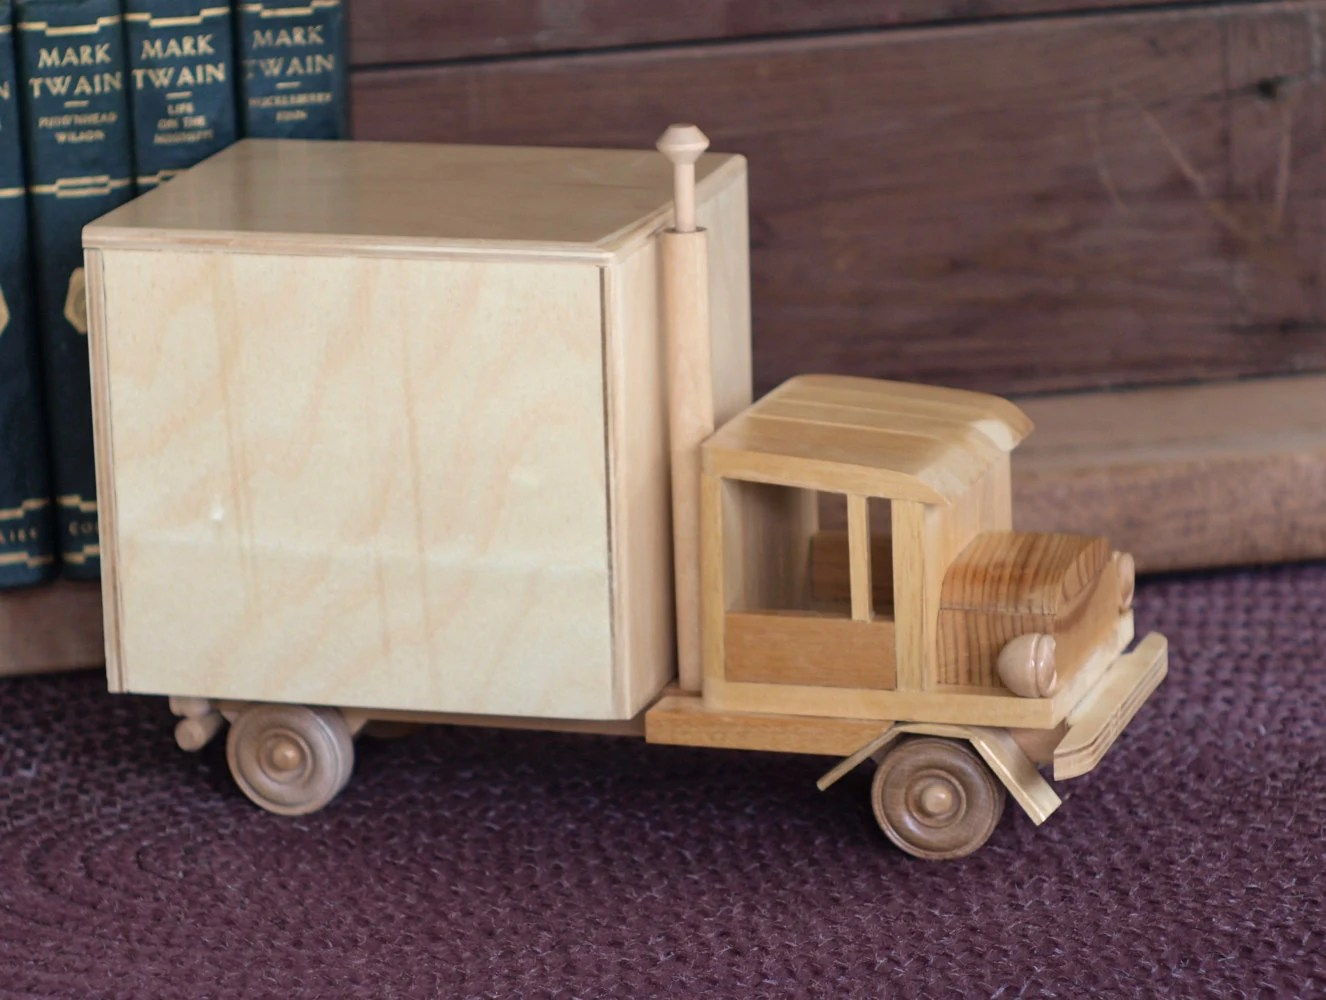 Toy Moving Truck Wooden Kids Toy Moving Truck Van Wood Children By